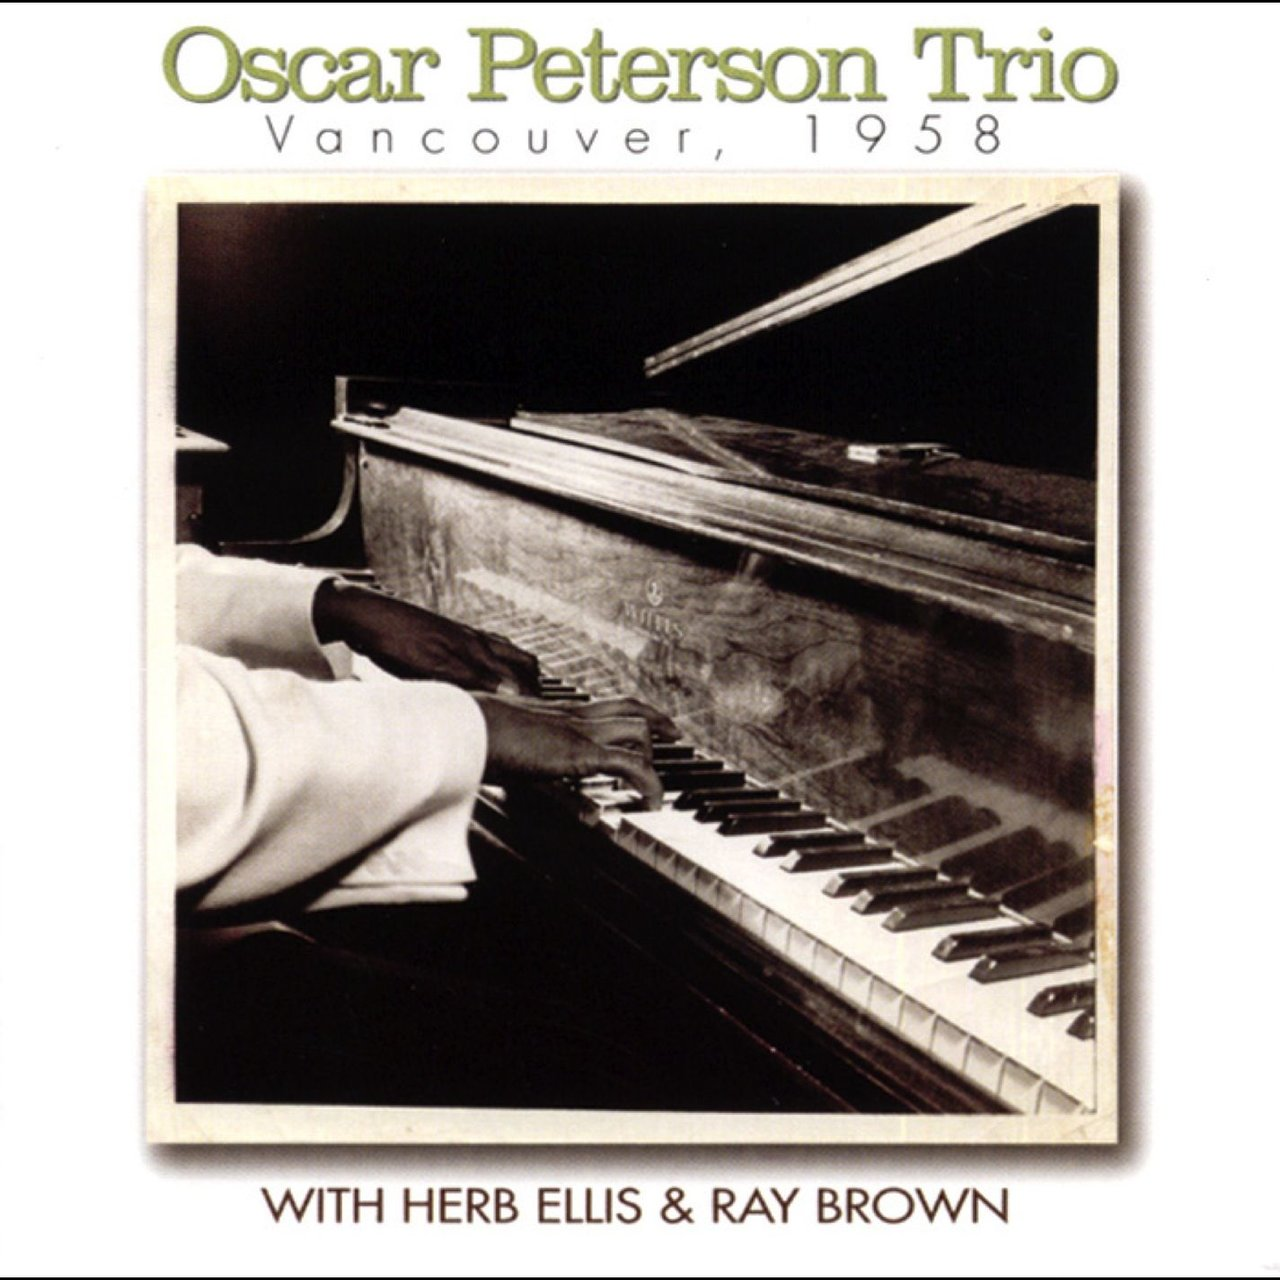 Vancouver, 1958 (with Herb Ellis & Ray Brown) [Live]